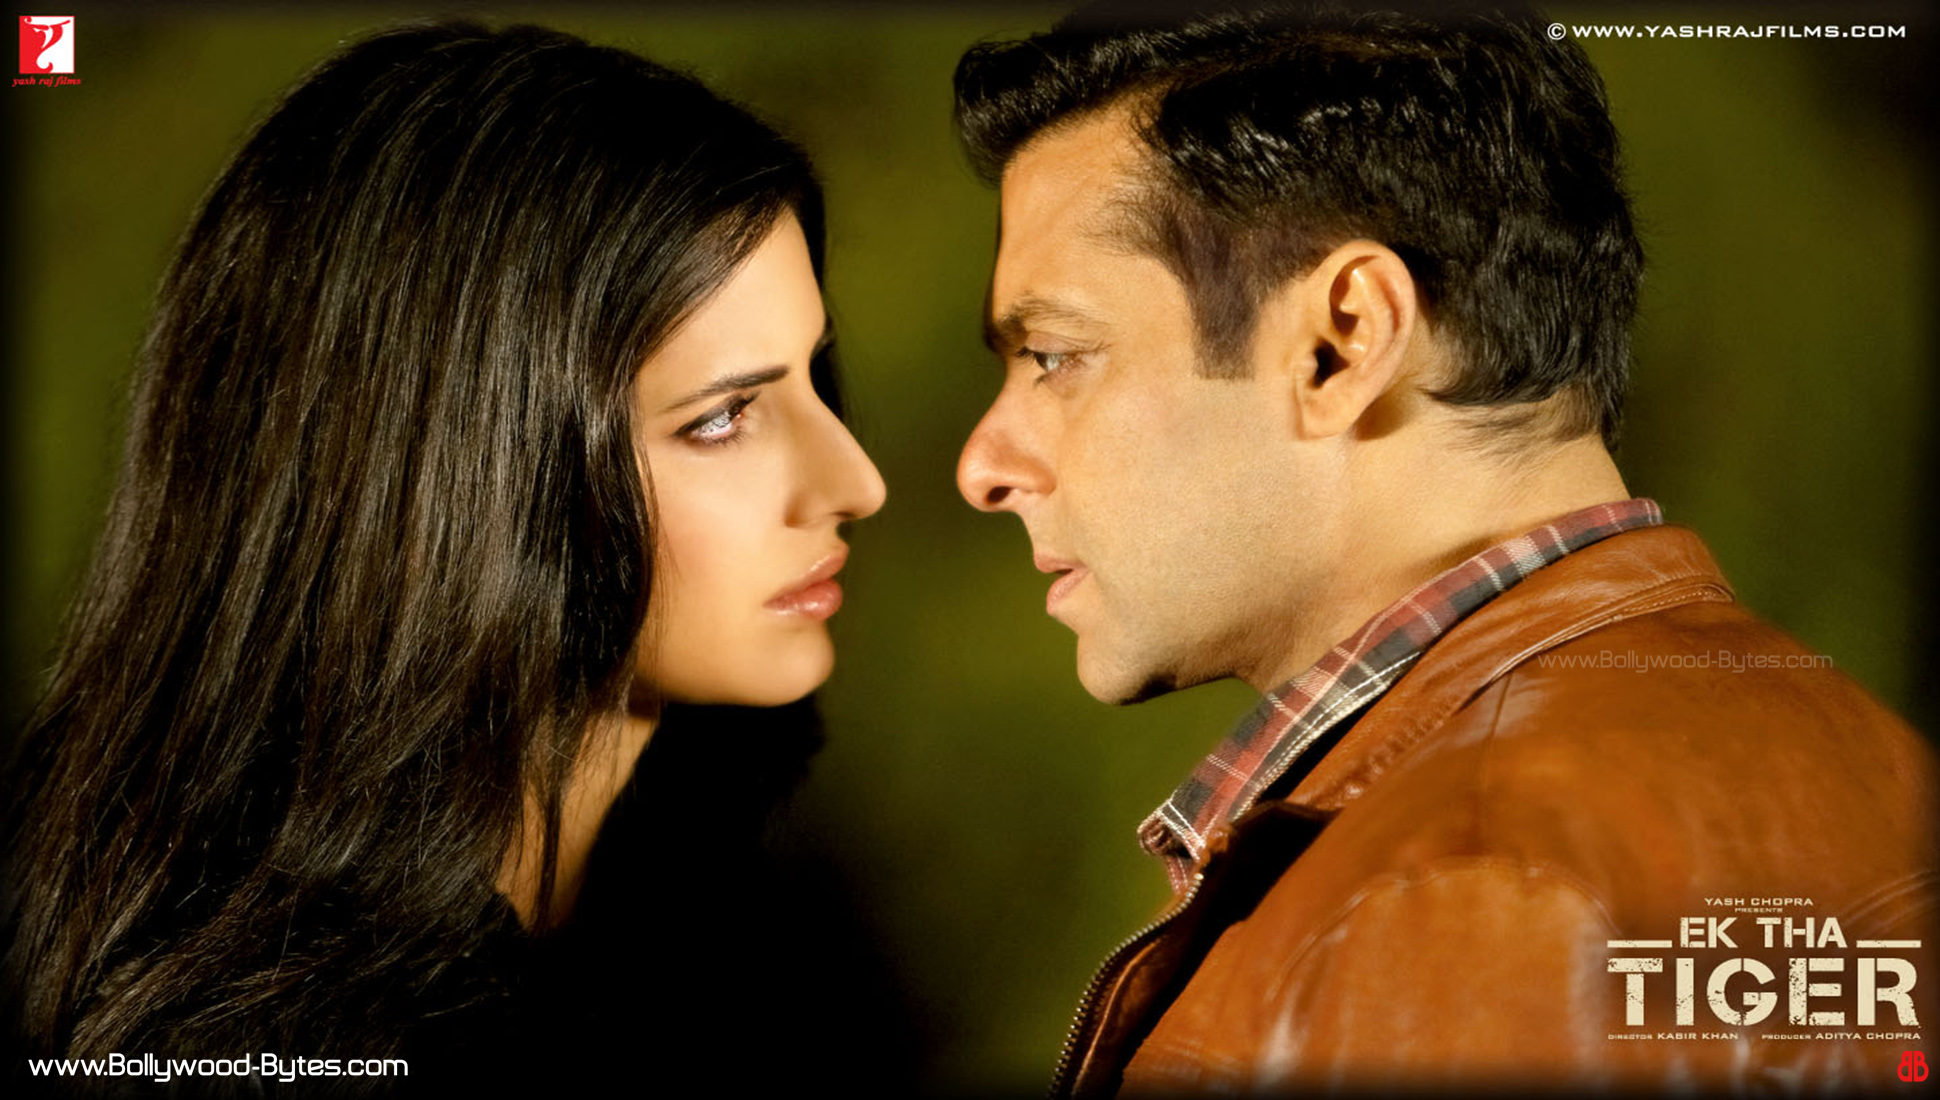 Salman Khan And Katrina Kaif In Ek Tha Tiger: Hd Wallpaper Of Ek Tha Tiger